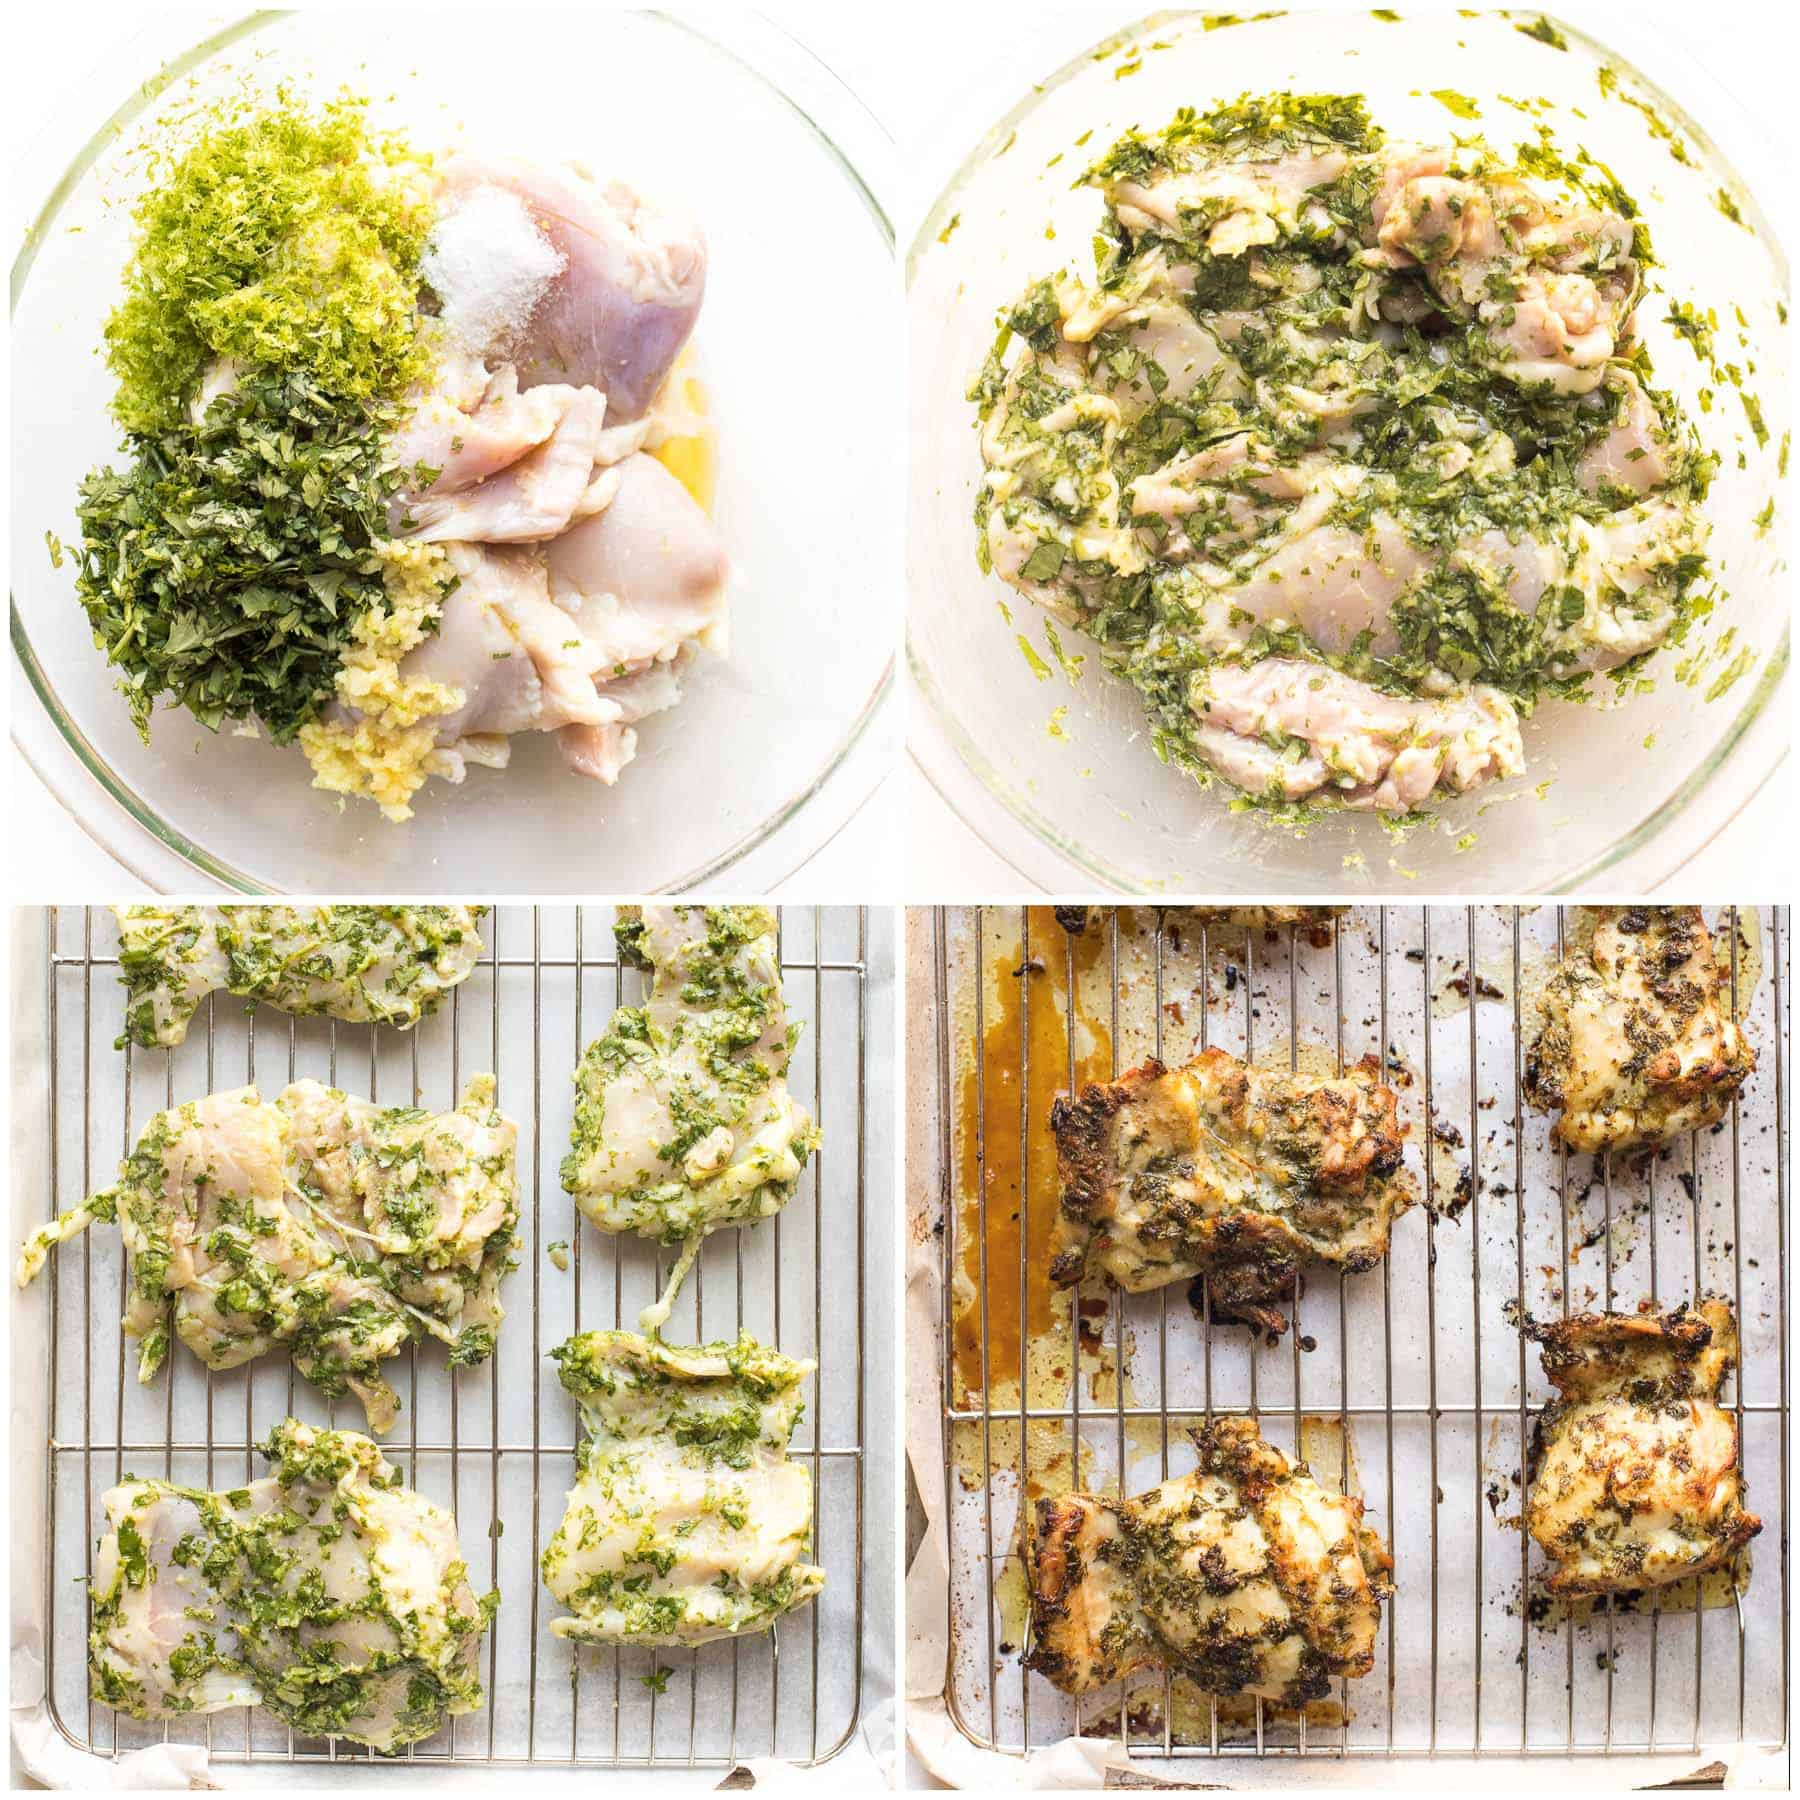 steps to making cilantro lime chicken thighs